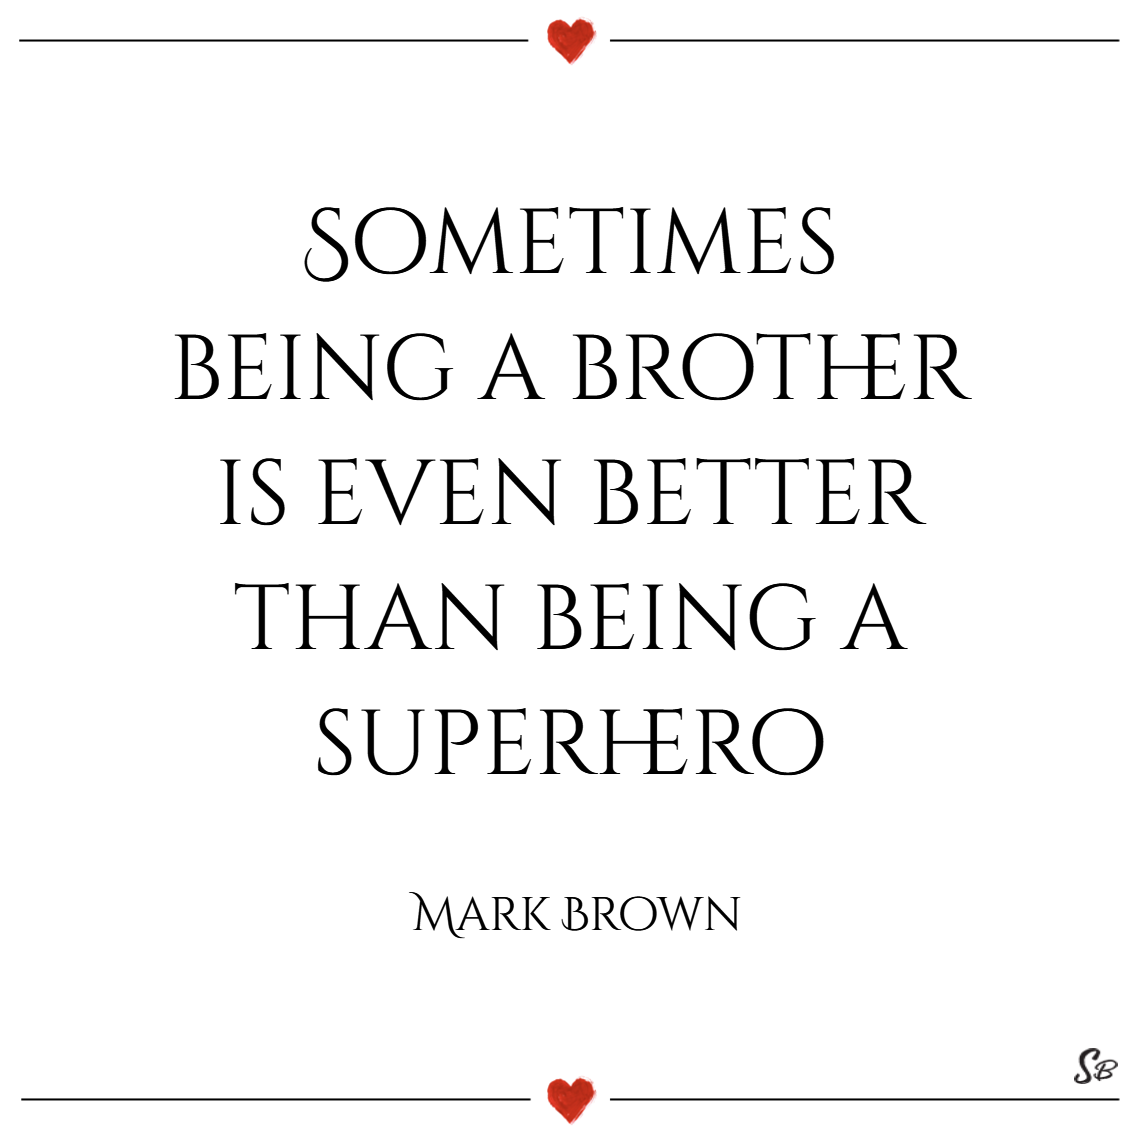 Sometimes being a brother is even better than being a superhero. – marc brown (1)